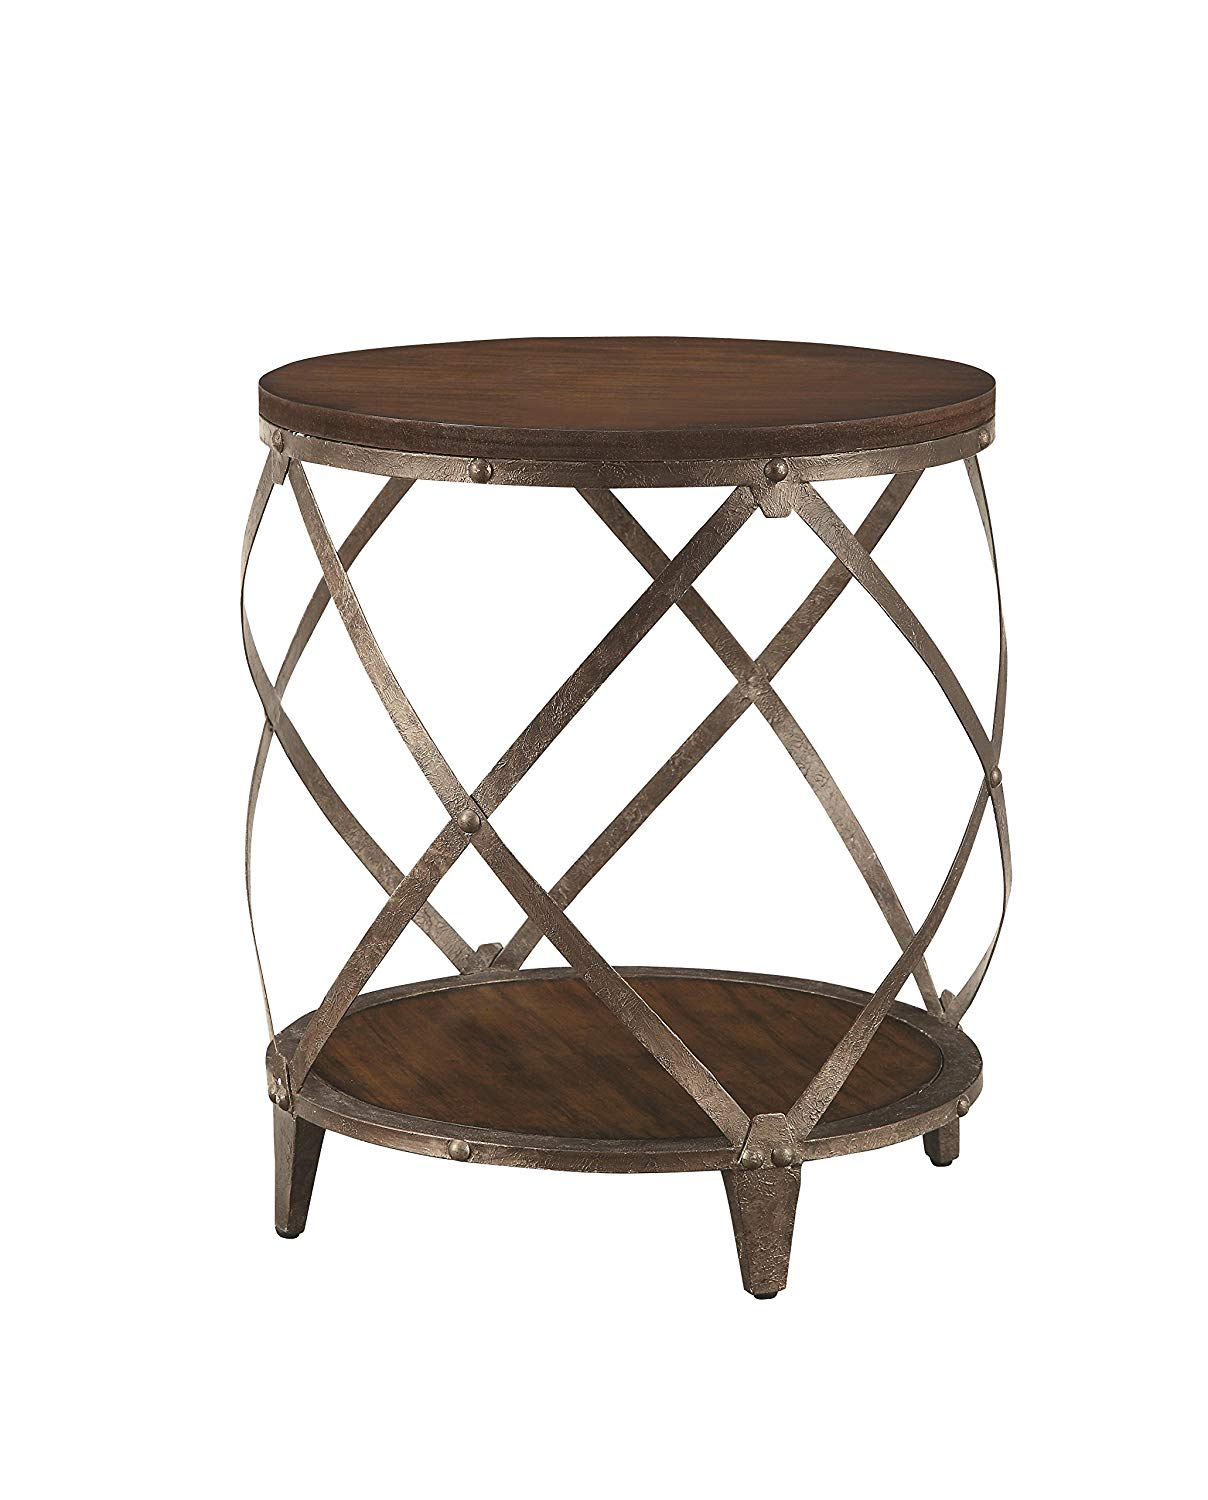 metal accent table with drum shape brown kitchen dining storage pool patio furniture marble coffee target avenue six piece chair and set beach themed floor lamps iron glass